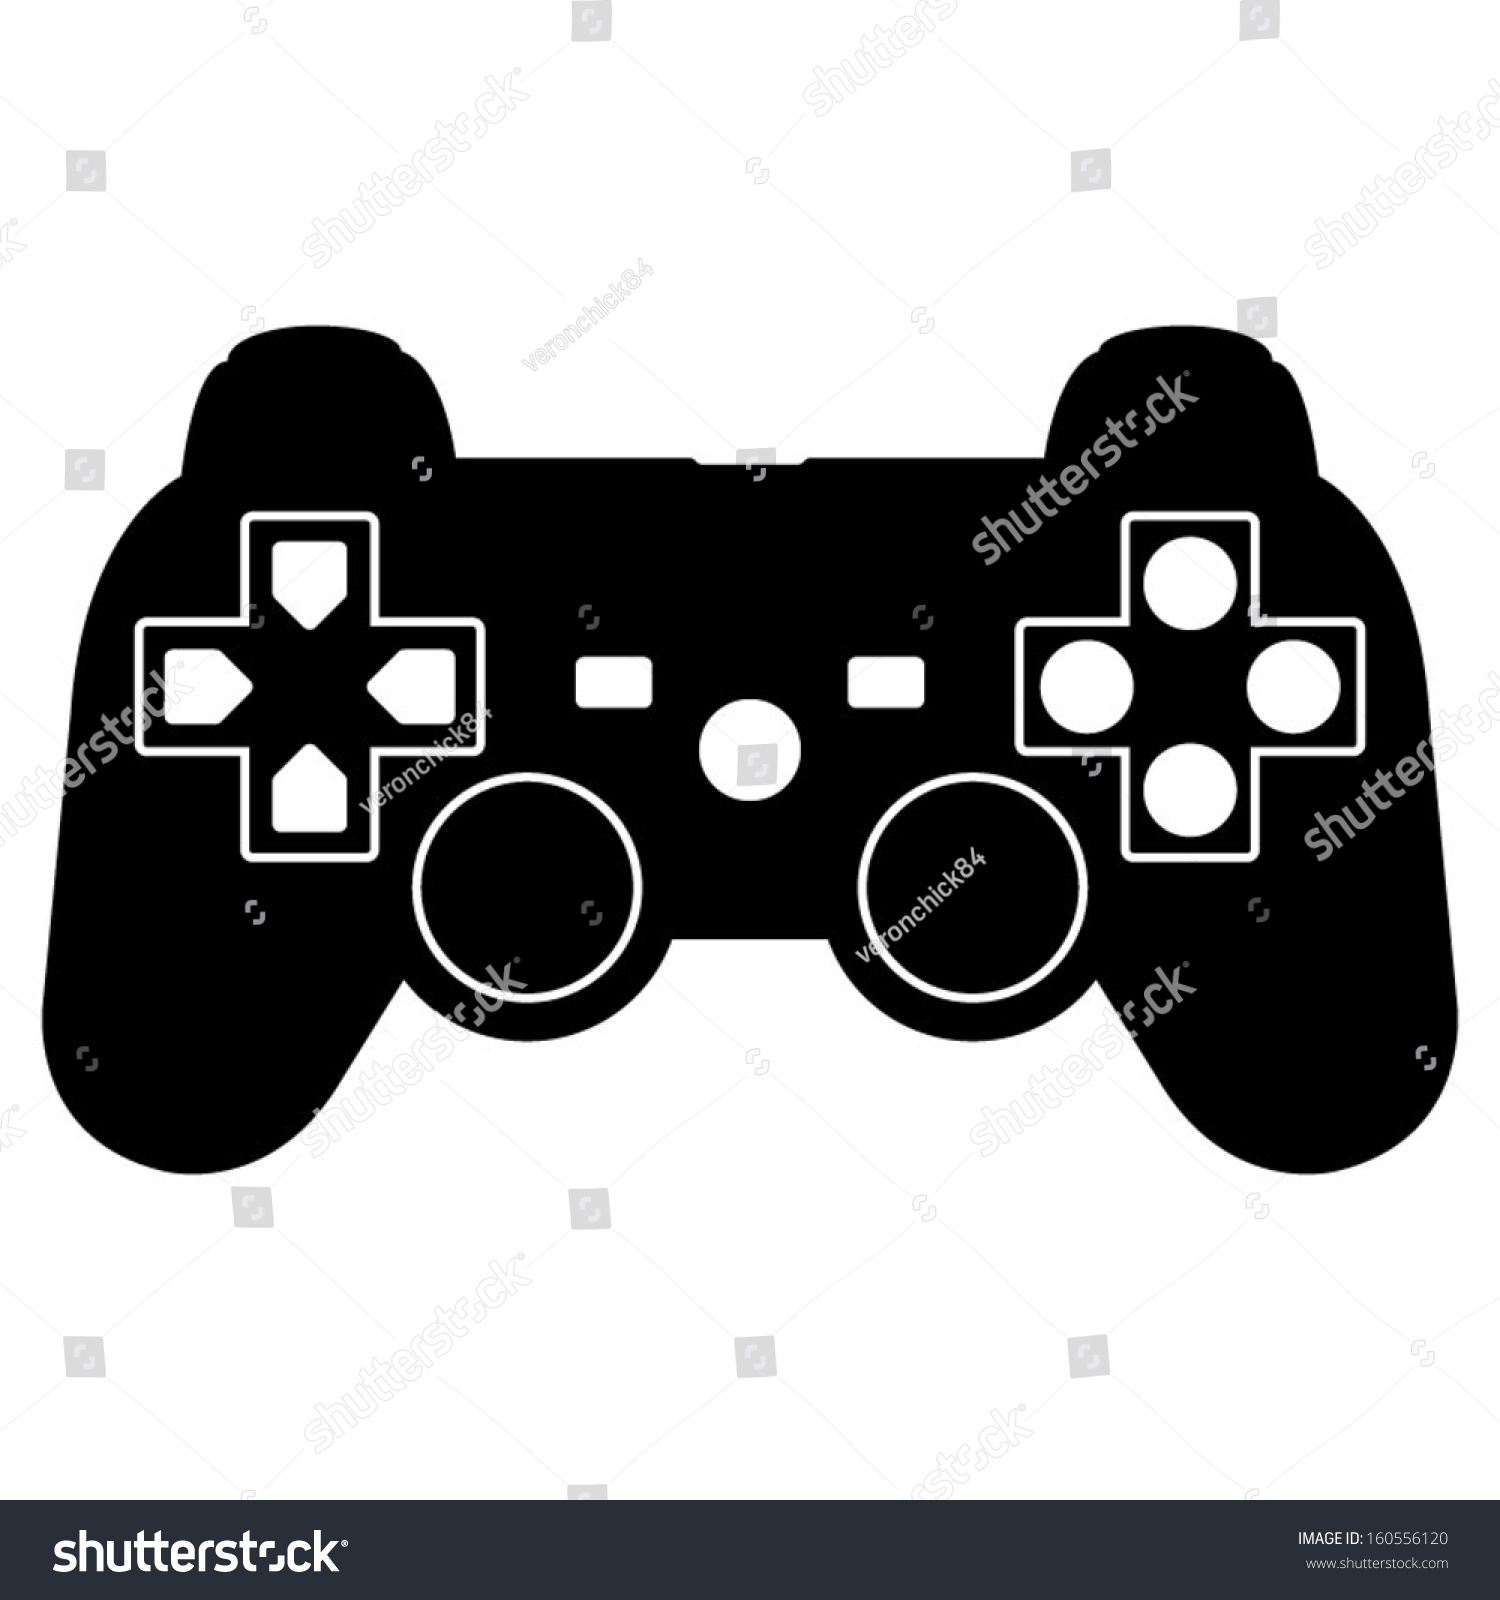 game controller icon stock vector illustration 160556120